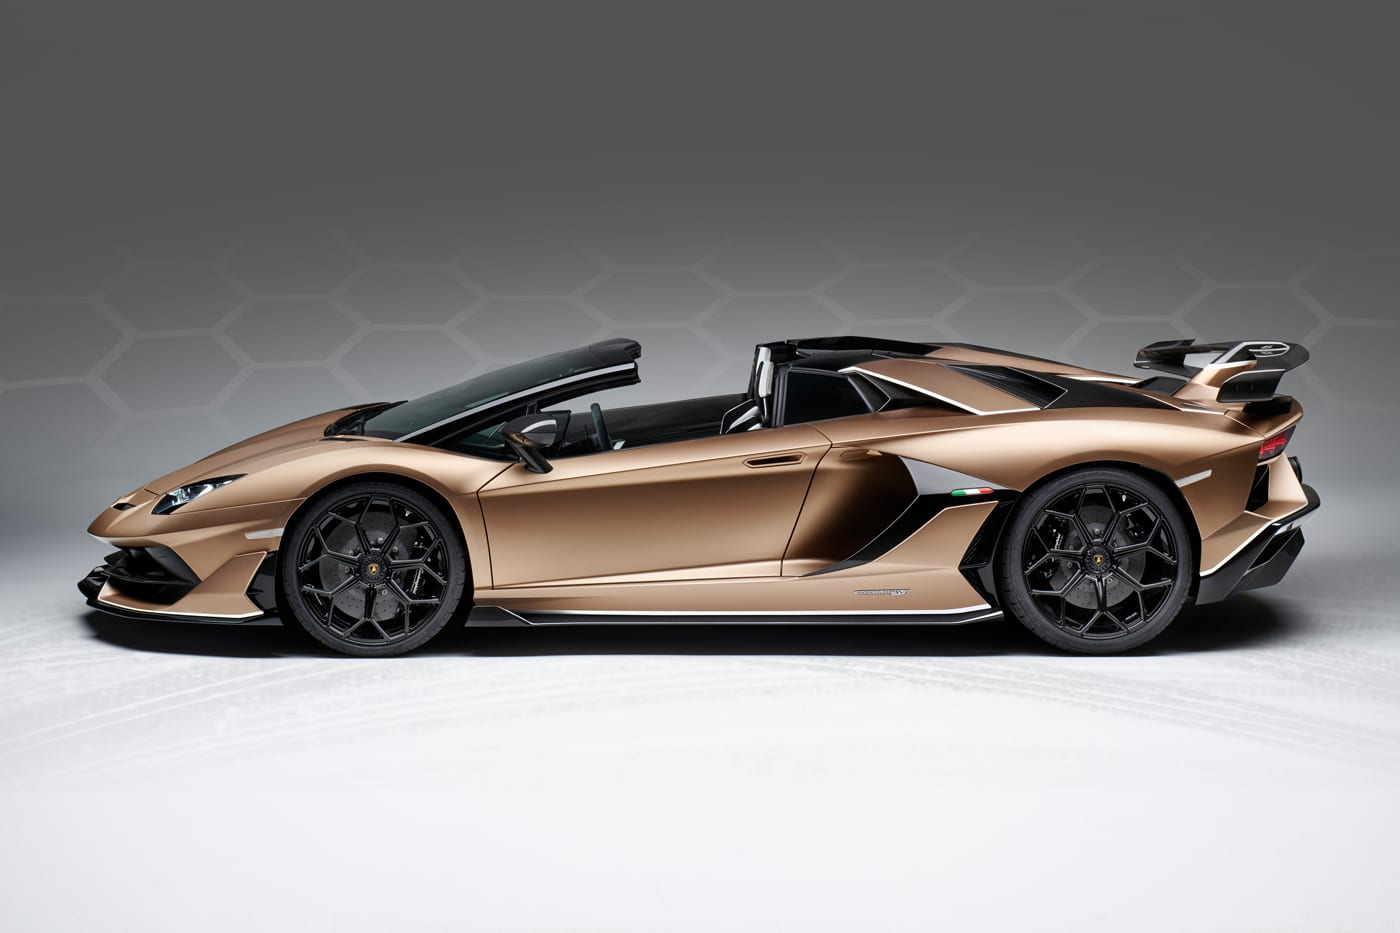 Lamborghini Aventador SVJ Roadster Price, Specs, Photos \u0026 Review